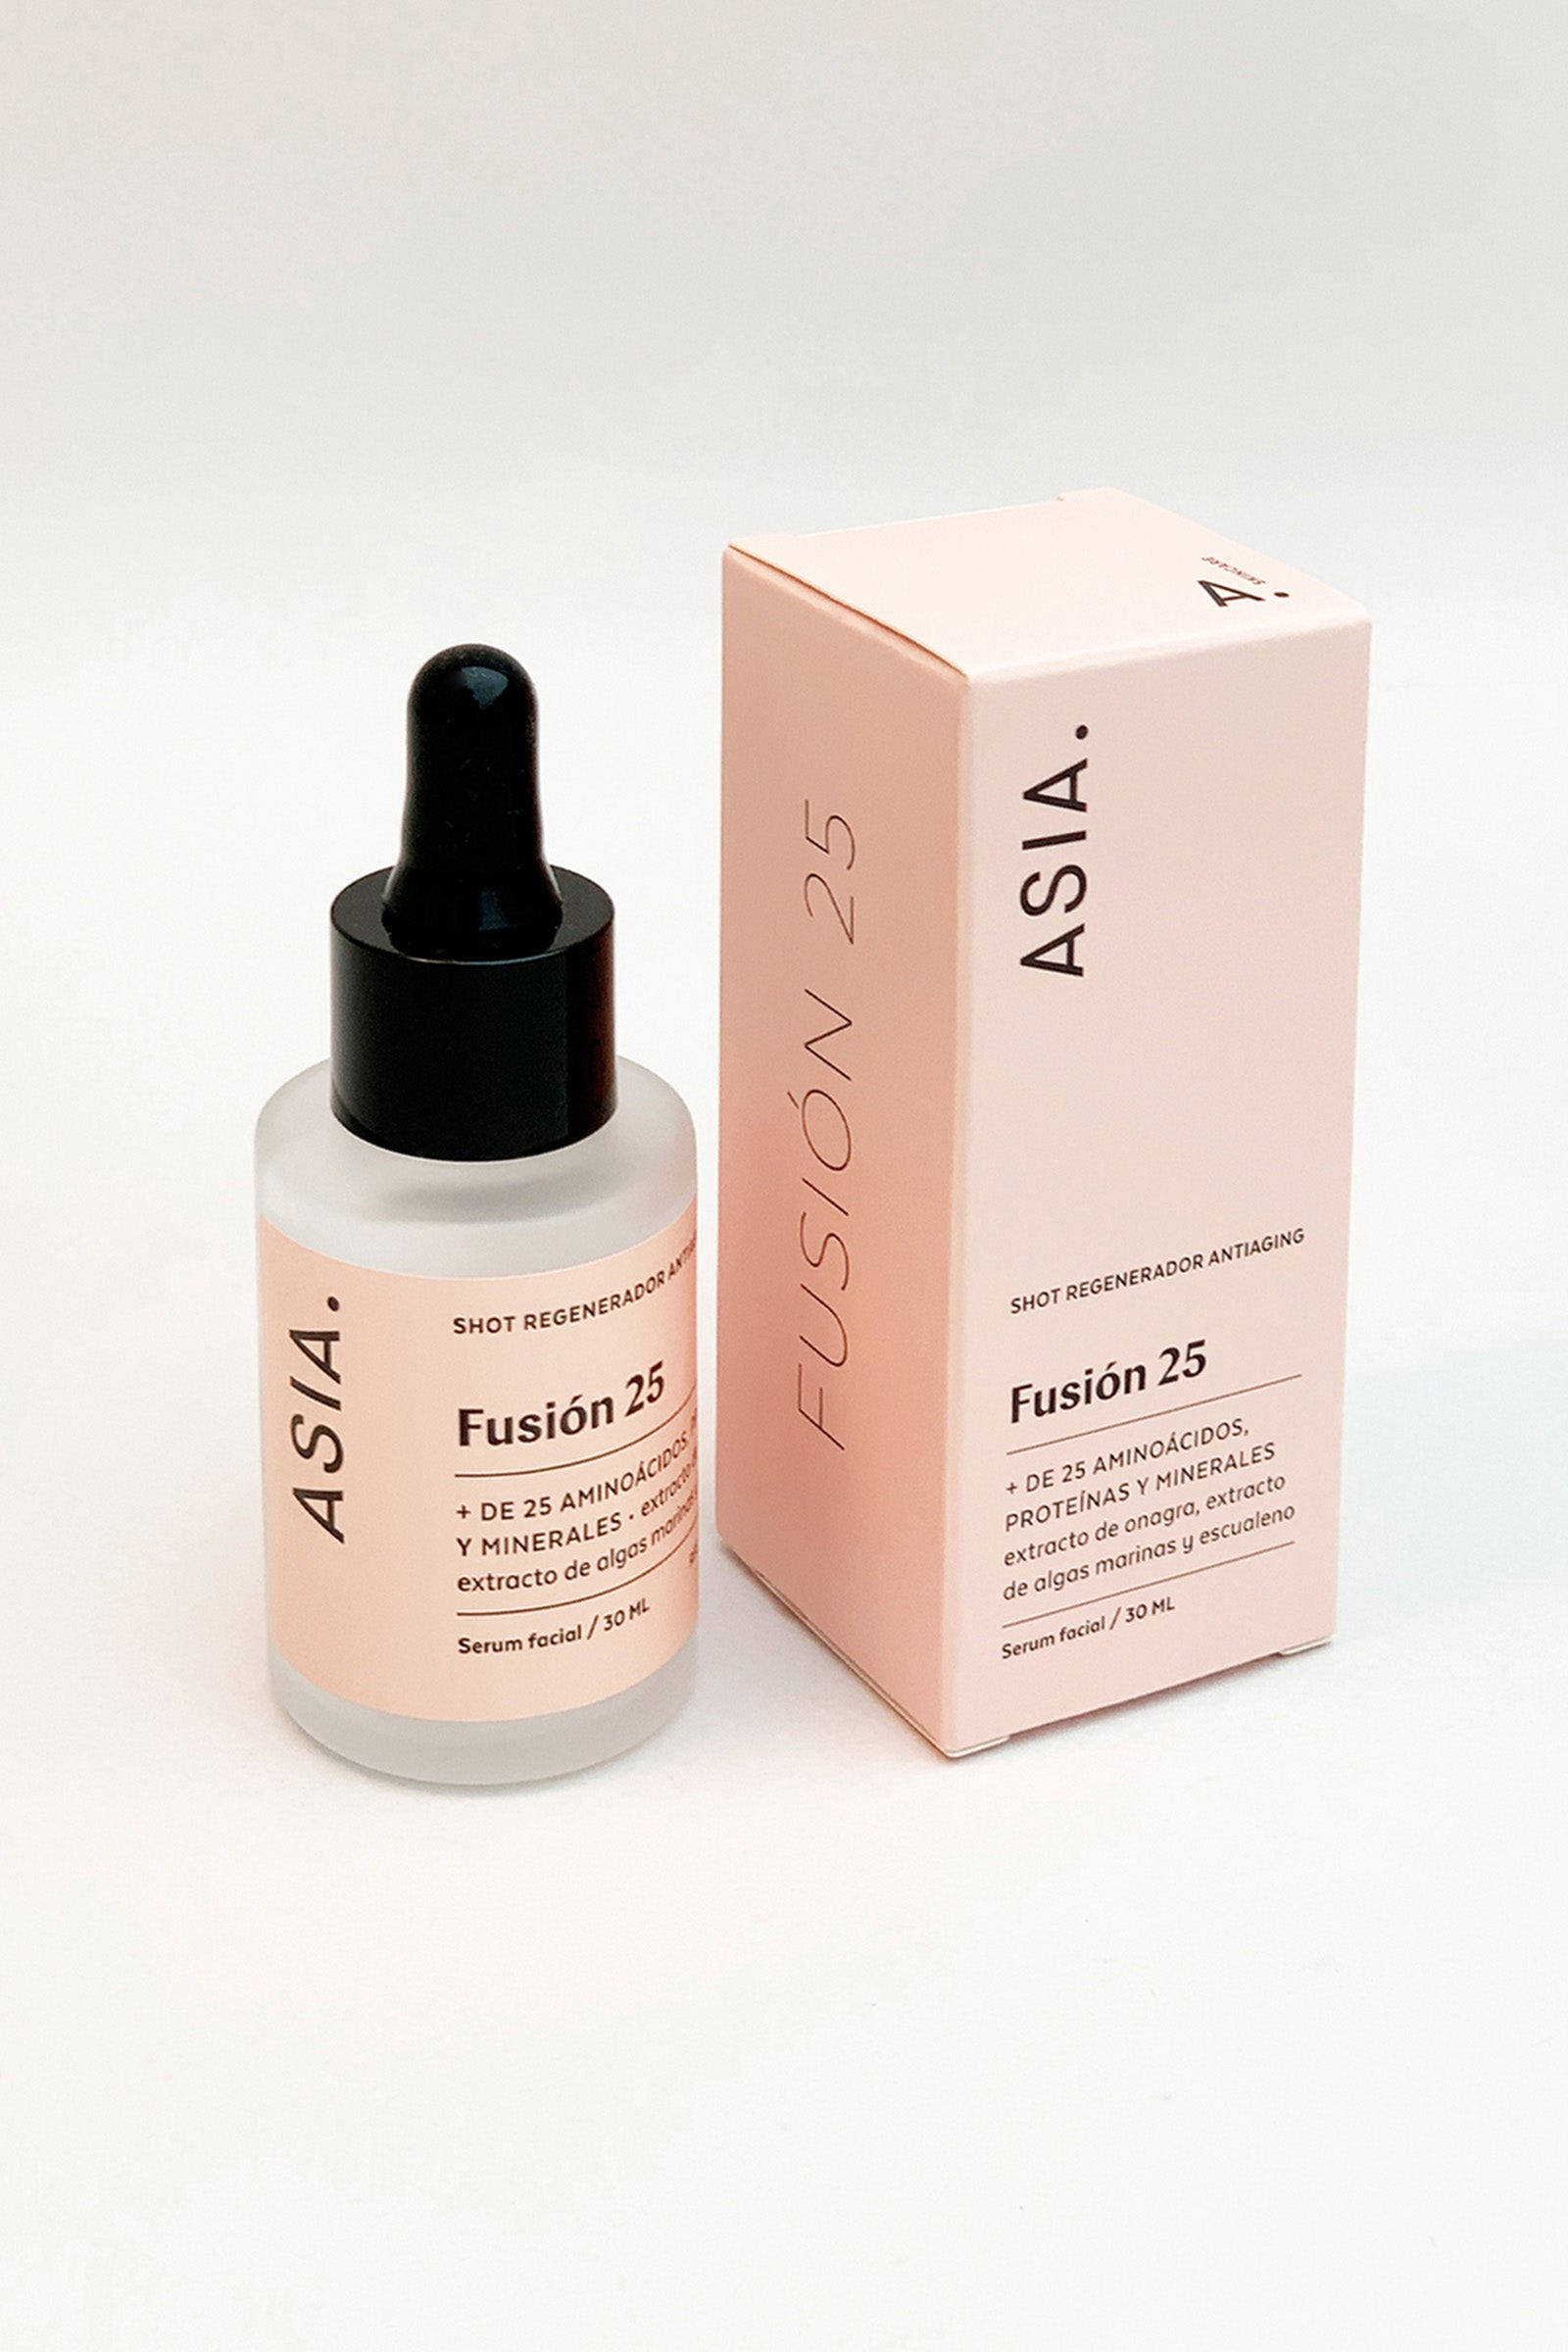 Fusión 25/ Serum facial